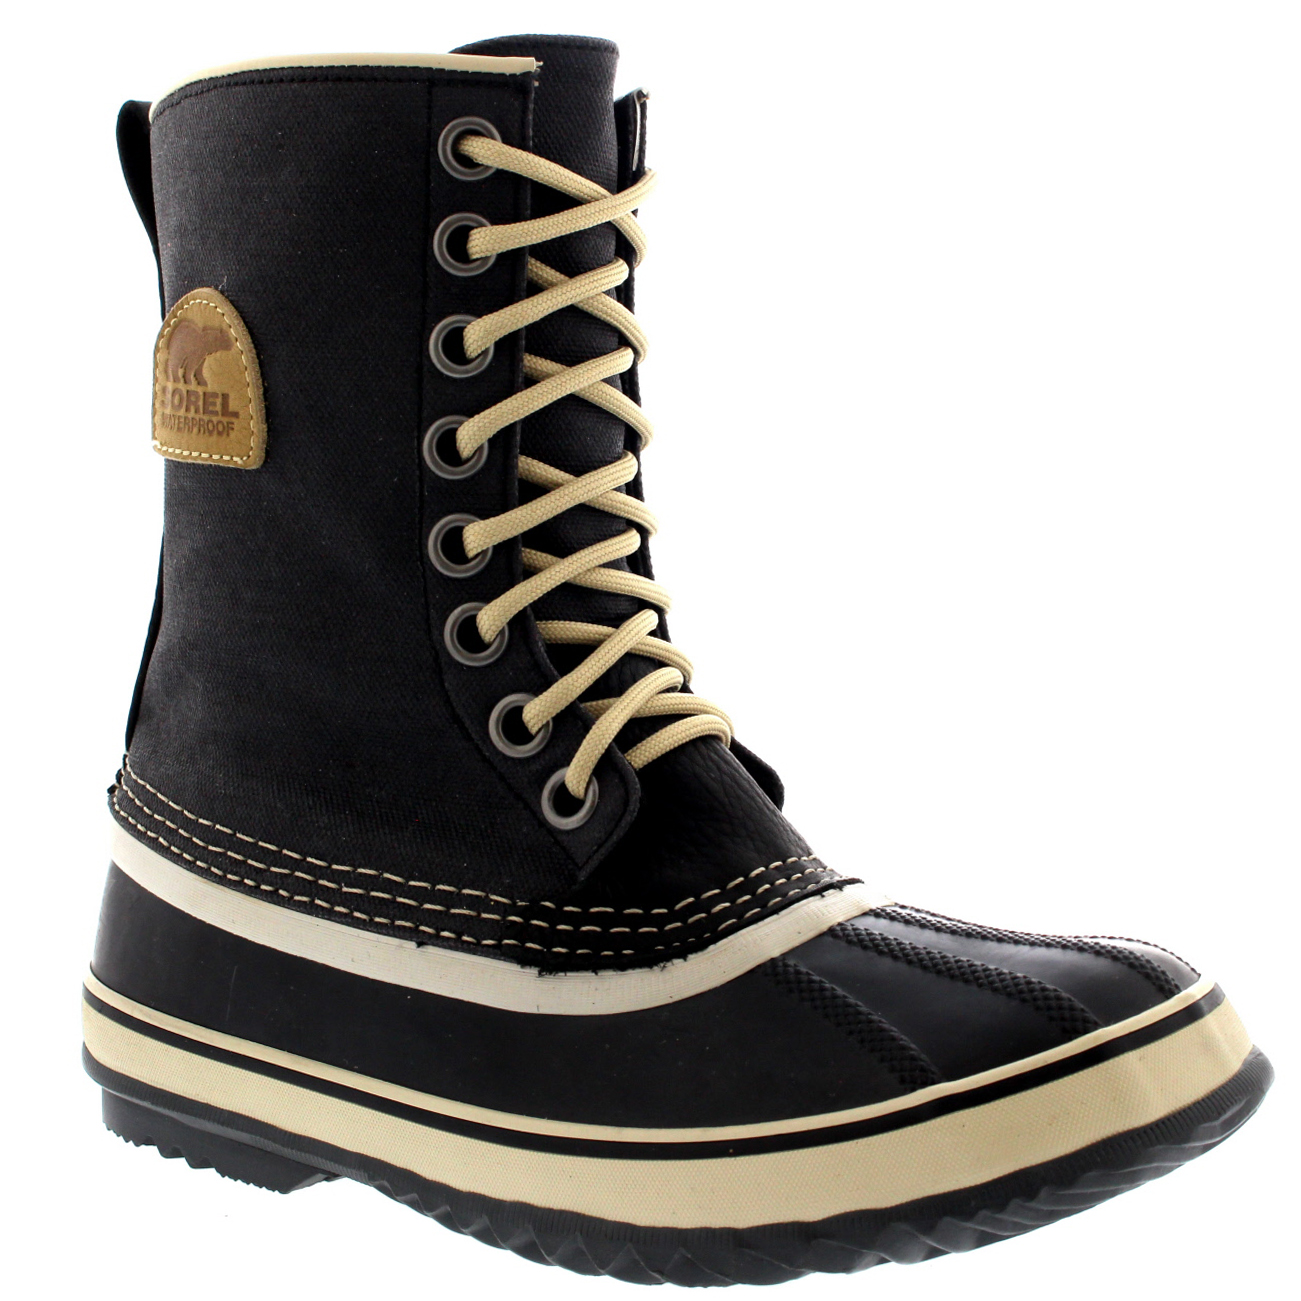 Elegant With These  Teva Durban Tall Mens Boots &163100 Sass The Hell Out Of Winter In These Gorgeous New  SOREL Womens Meadow Snow Boots &163120 Let Your Minime Build As Many Snowmen As They Jolly Well Want To In These  Regatta